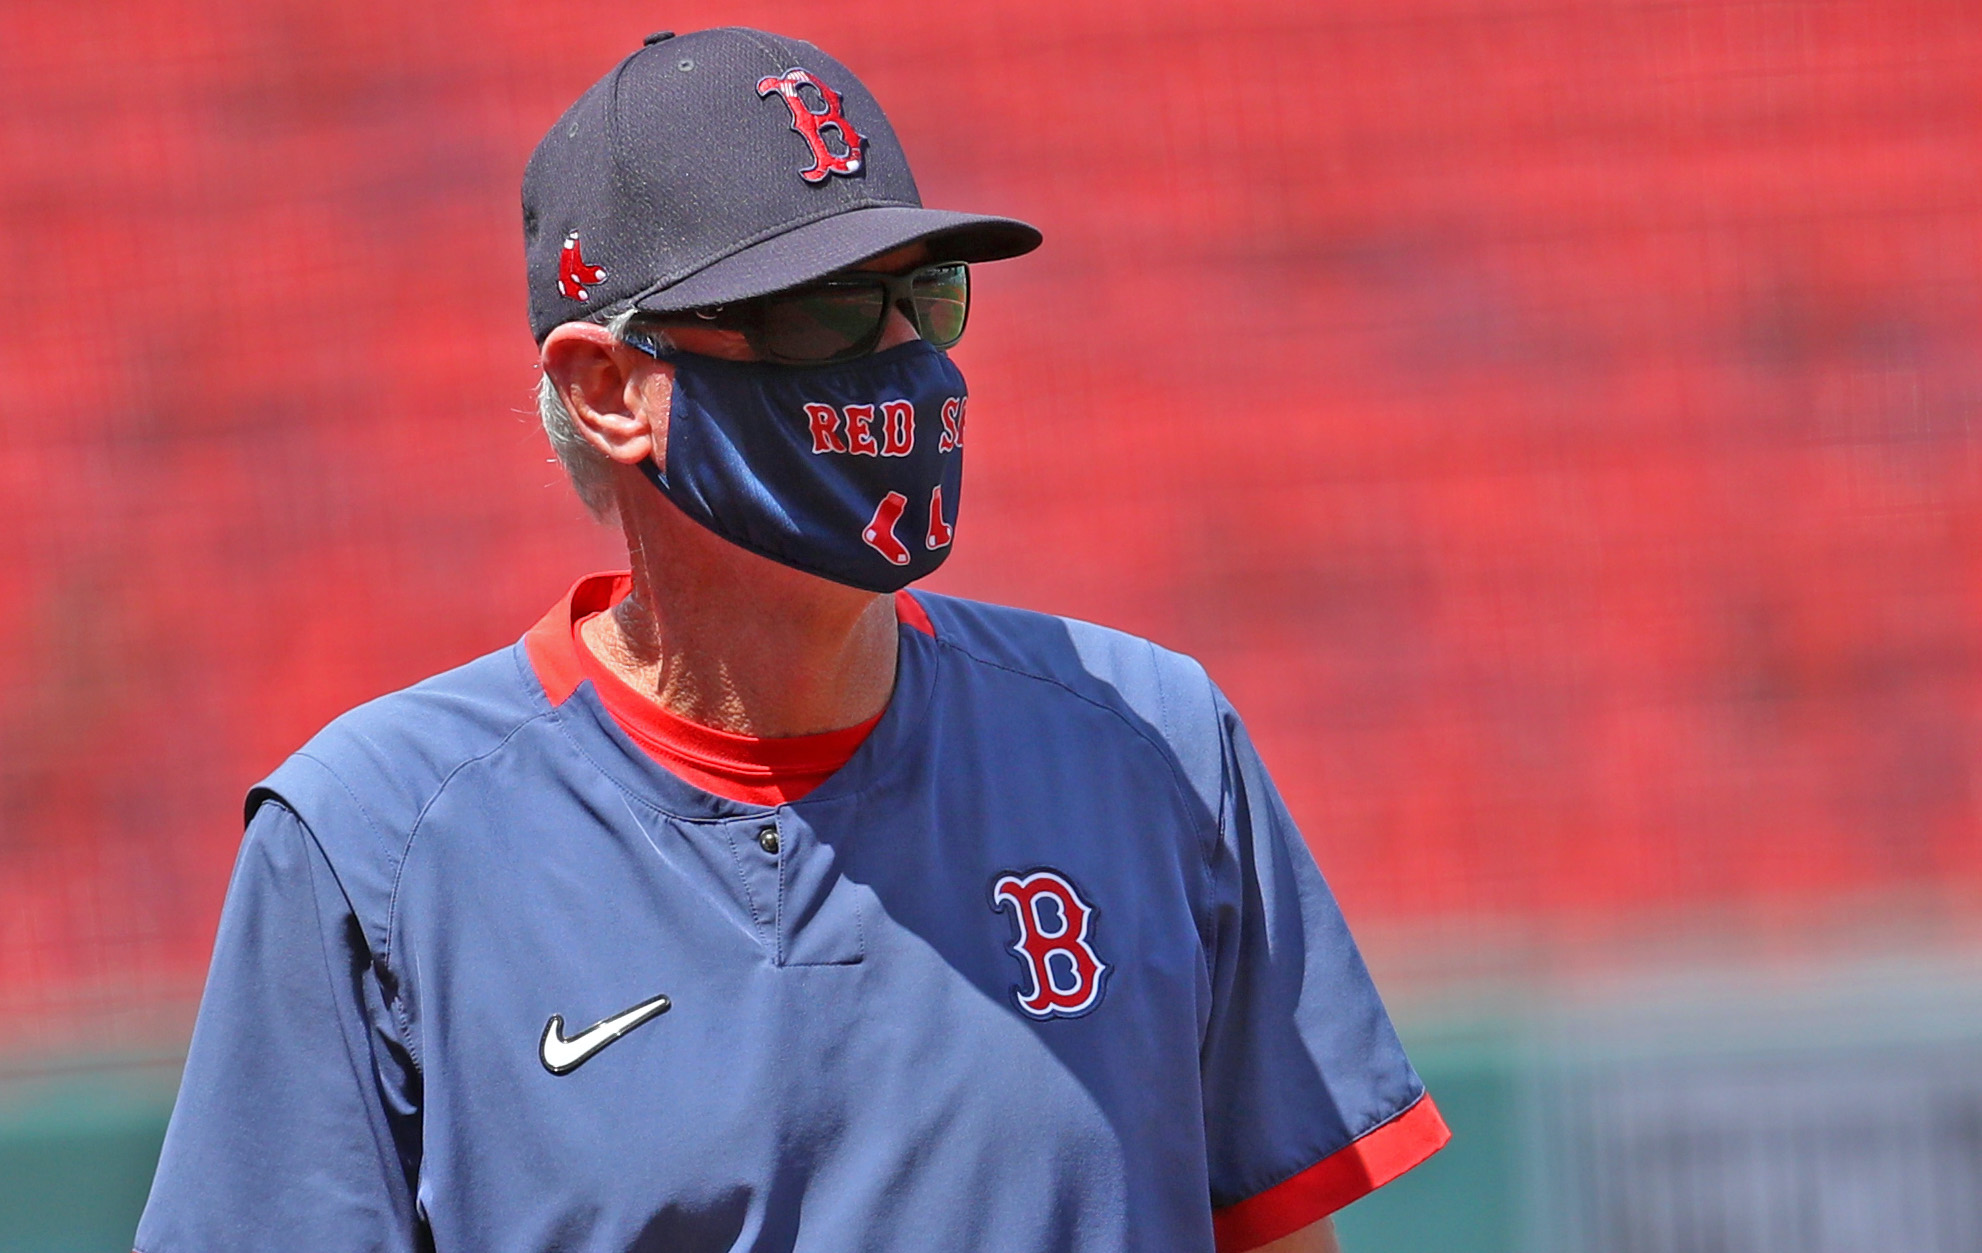 BOSTON, MASSACHUSETTS - JULY 09: Red Sox Manager Ron Roenicke looks on during Summer Workouts at Fenway Park on July 09, 2020 in Boston, Massachusetts. (Photo by Maddie Meyer/Getty Images)